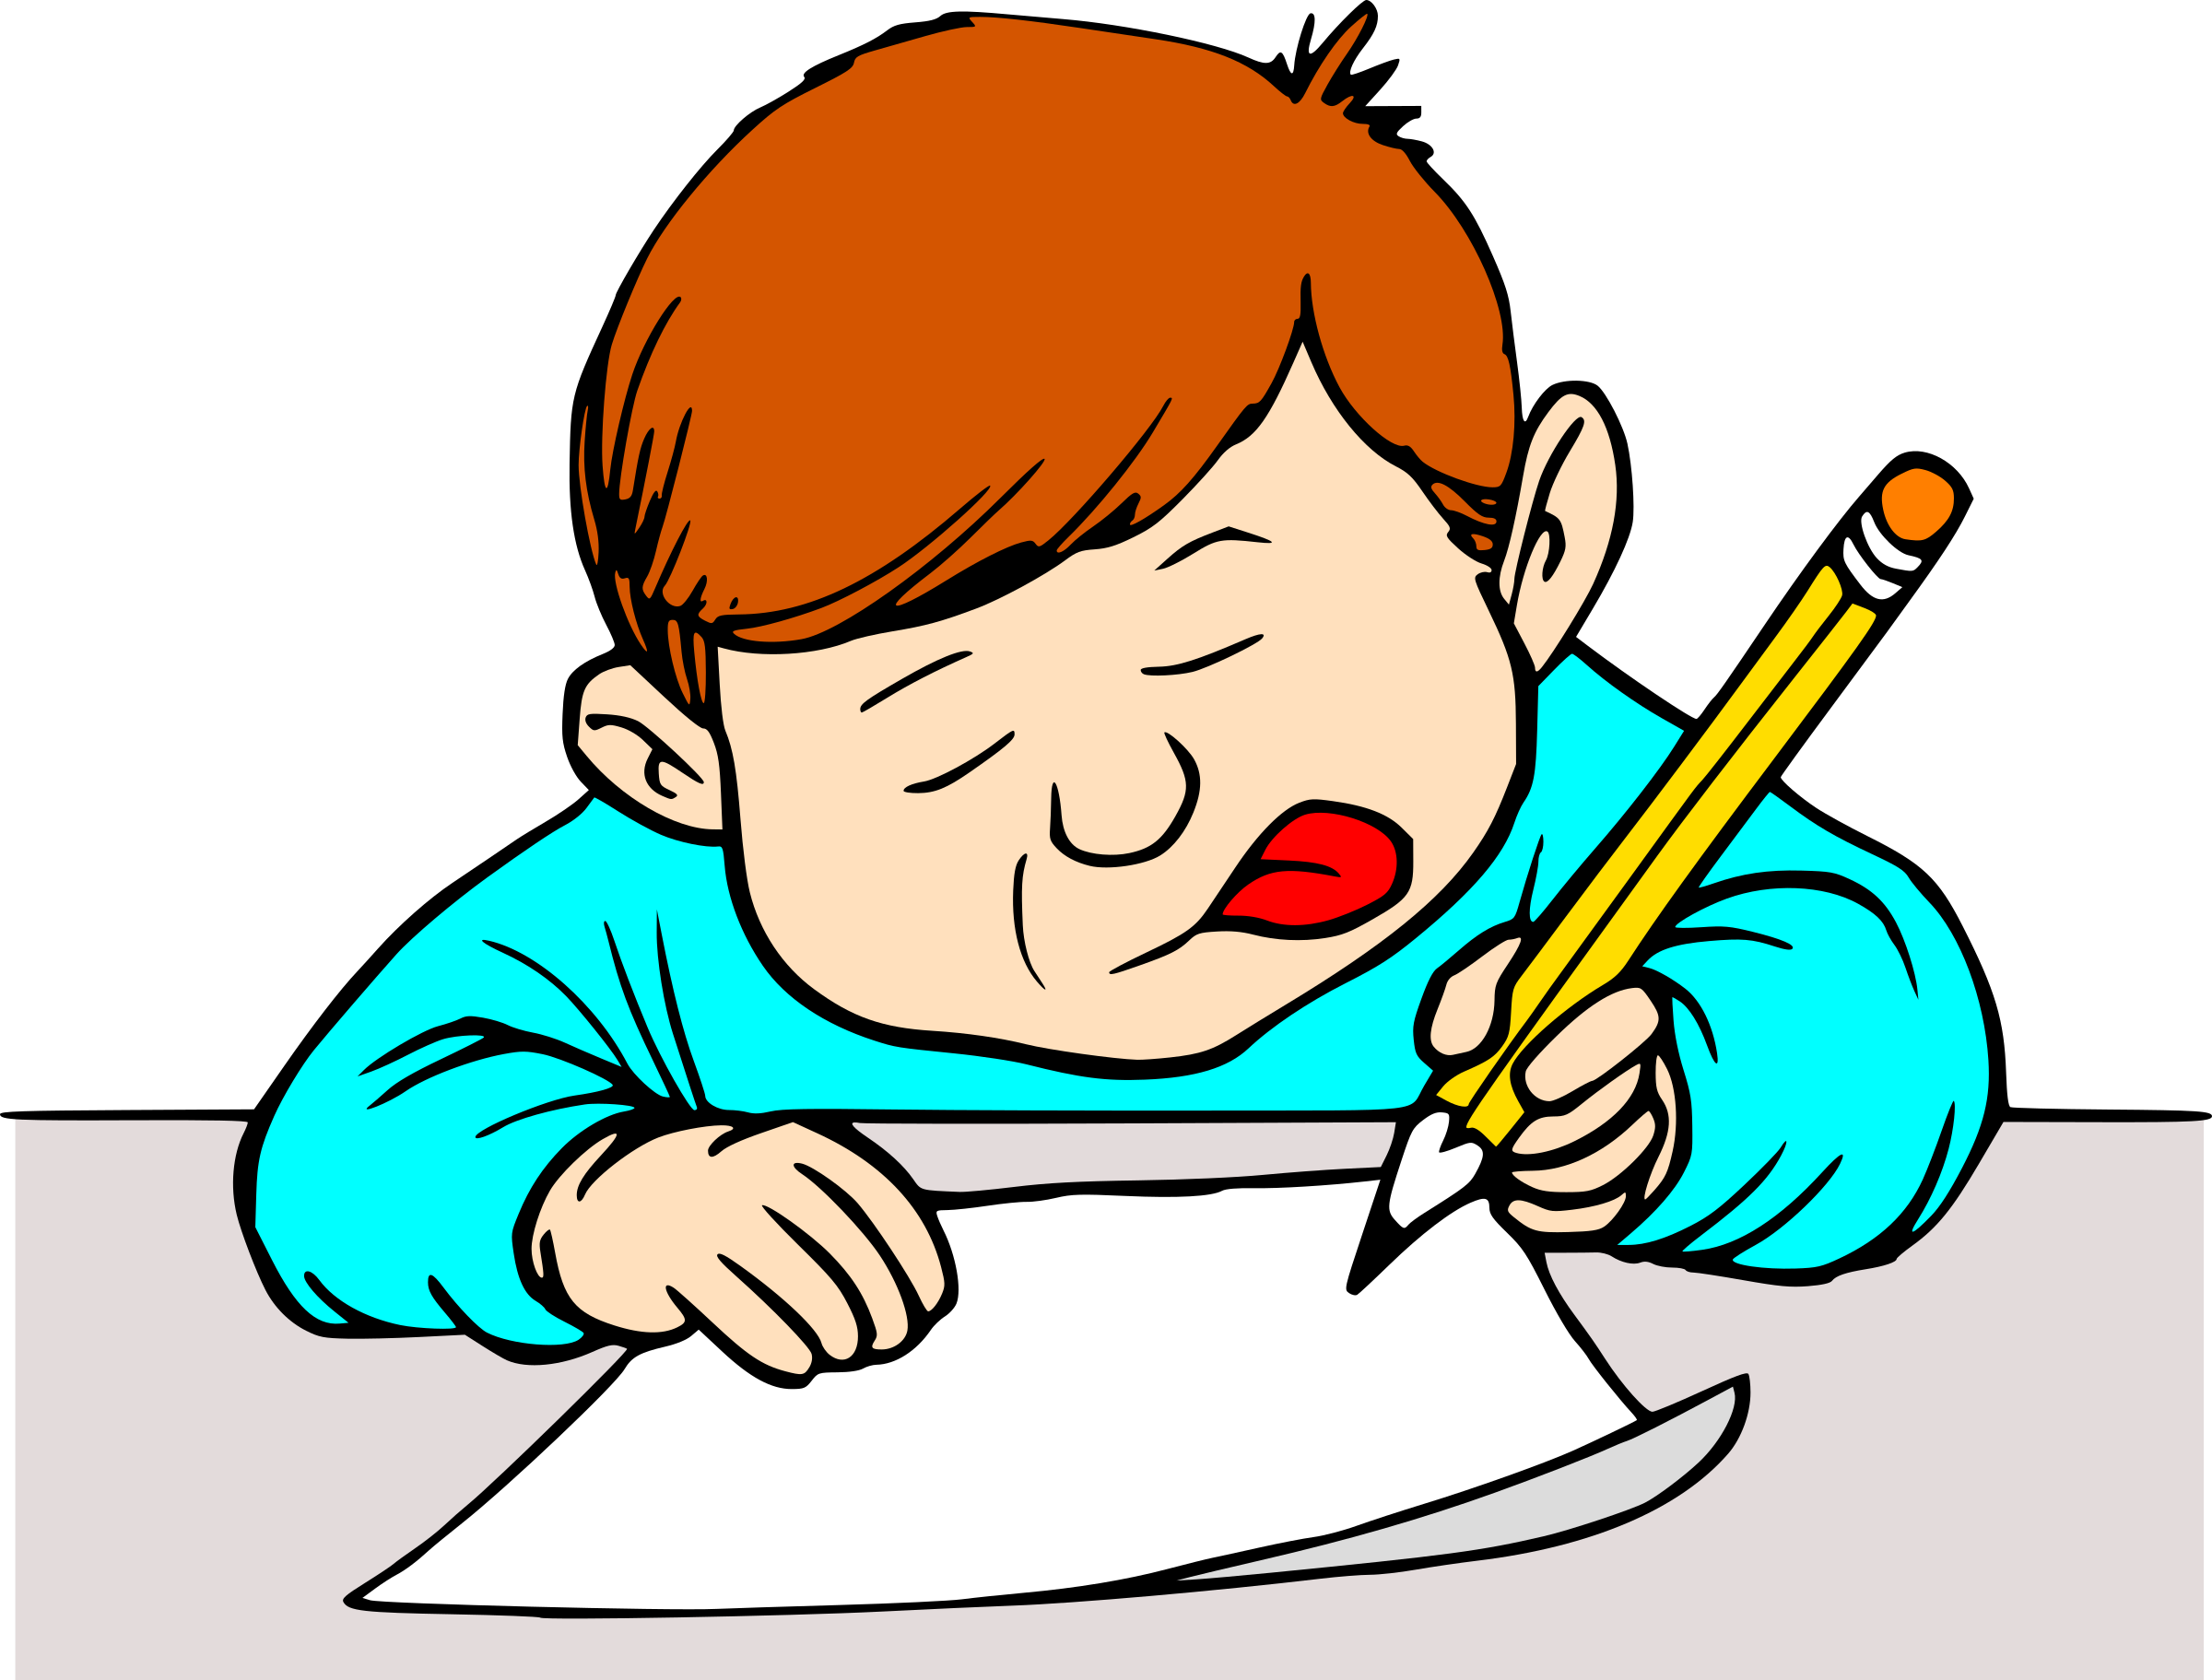 clip art transparent download Child writing clipart. Student big image png